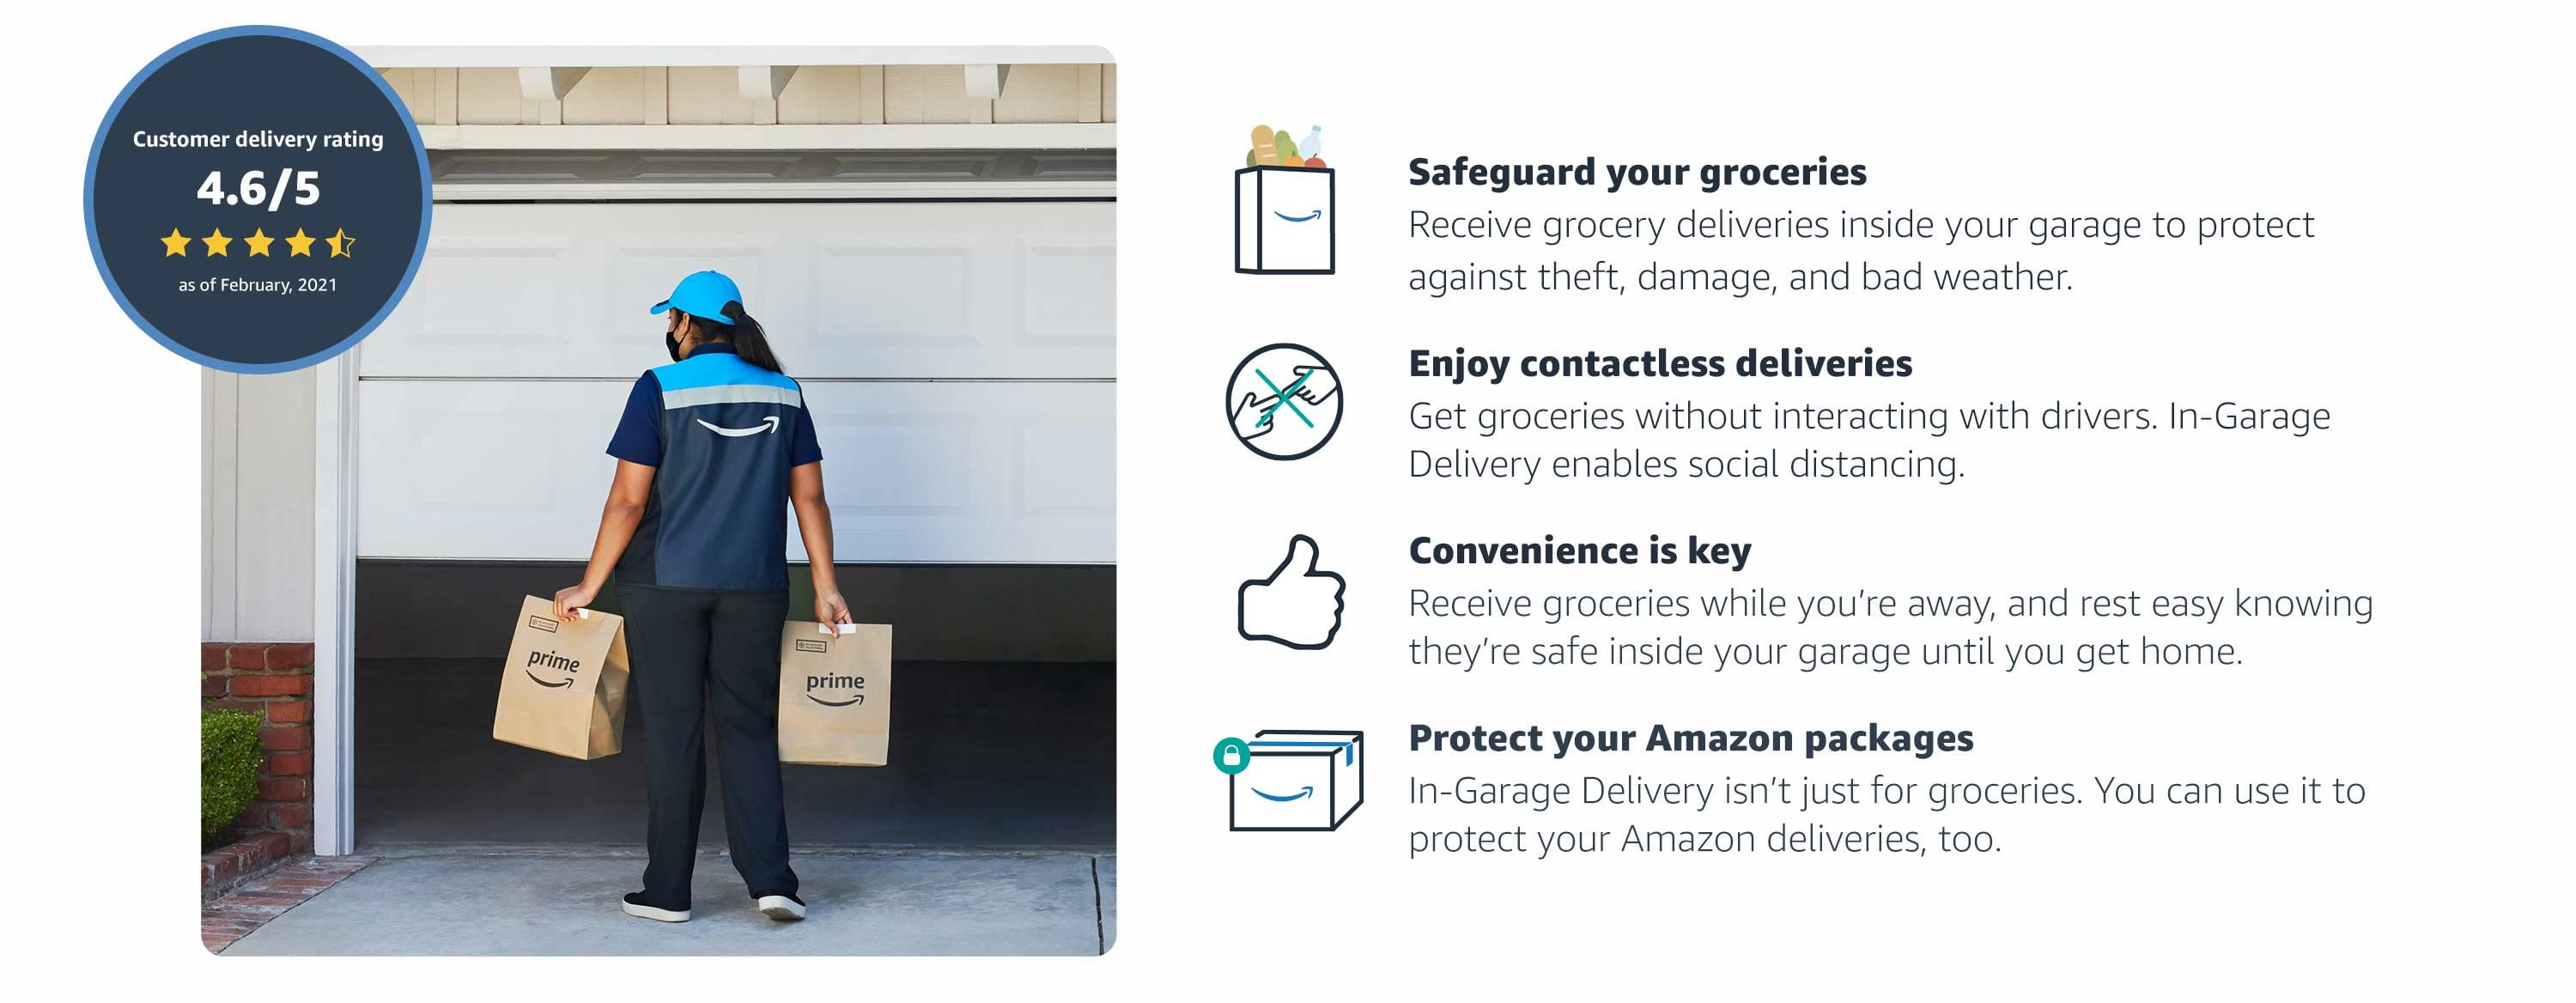 Safeguard your groceries. Enjoy contactless deliveries. Convenience is Key. Protect your Amazon packages too.